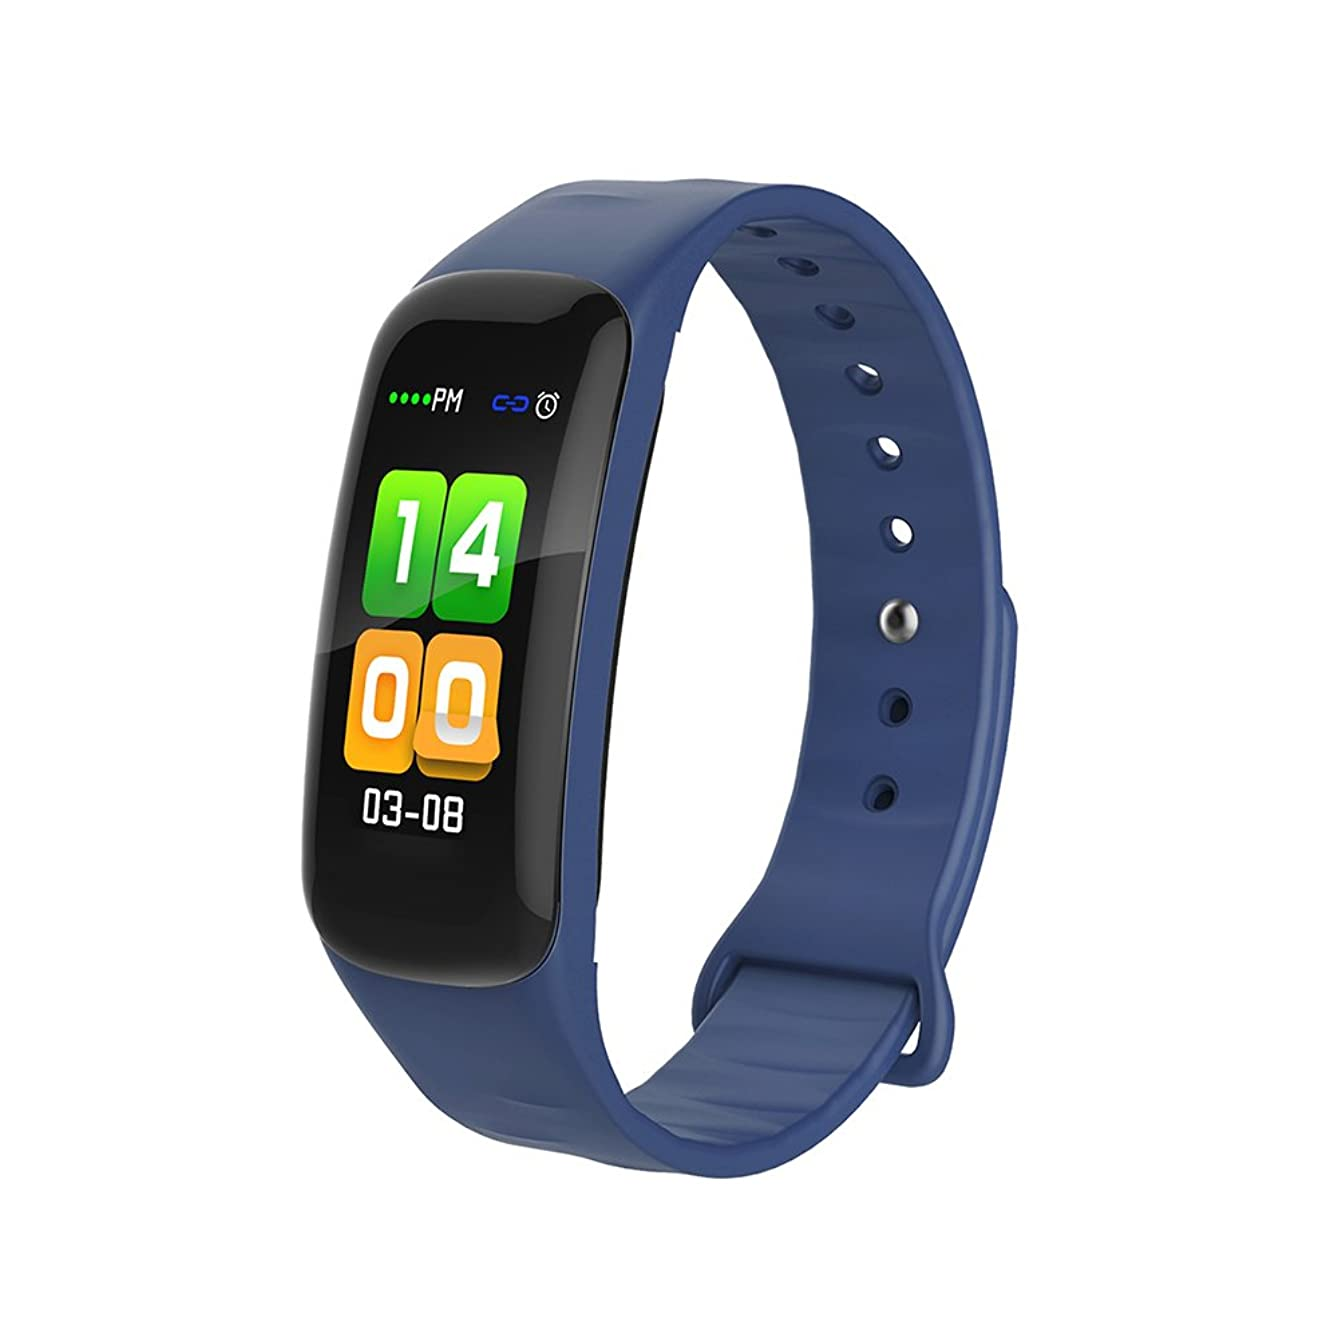 Fitness Tracker with Upgraded Color Display Colorful UI Touch Screen, Smart Watch with Heart Rate Monitor and Sleep Monitor Call/SMS Remind, IP67 Waterproof Activity Tracker for iOS/Android.